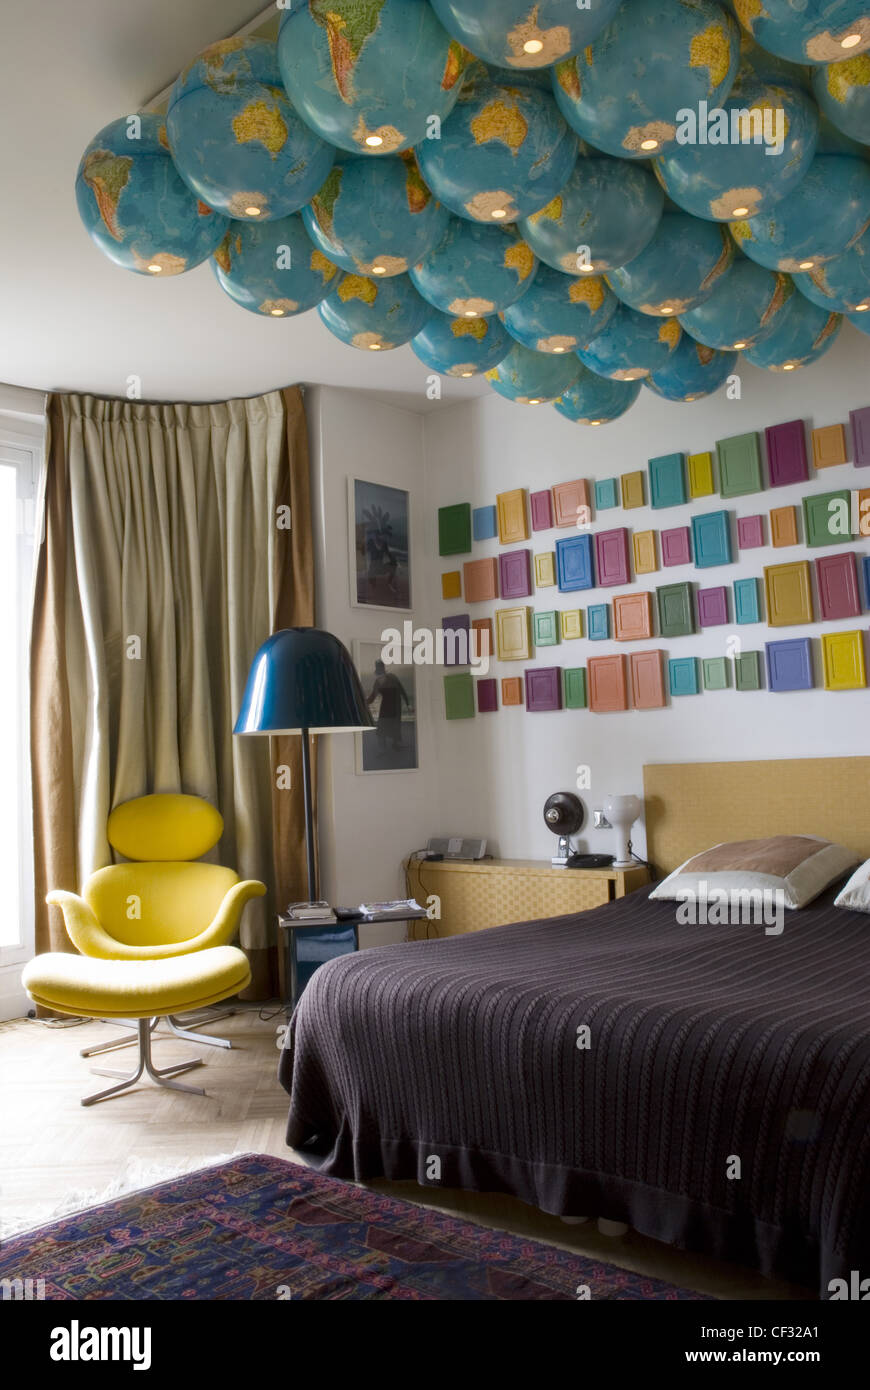 French New Wave The Refurbished Home Of Parisian Furniture Dealer Stock Photo Alamy